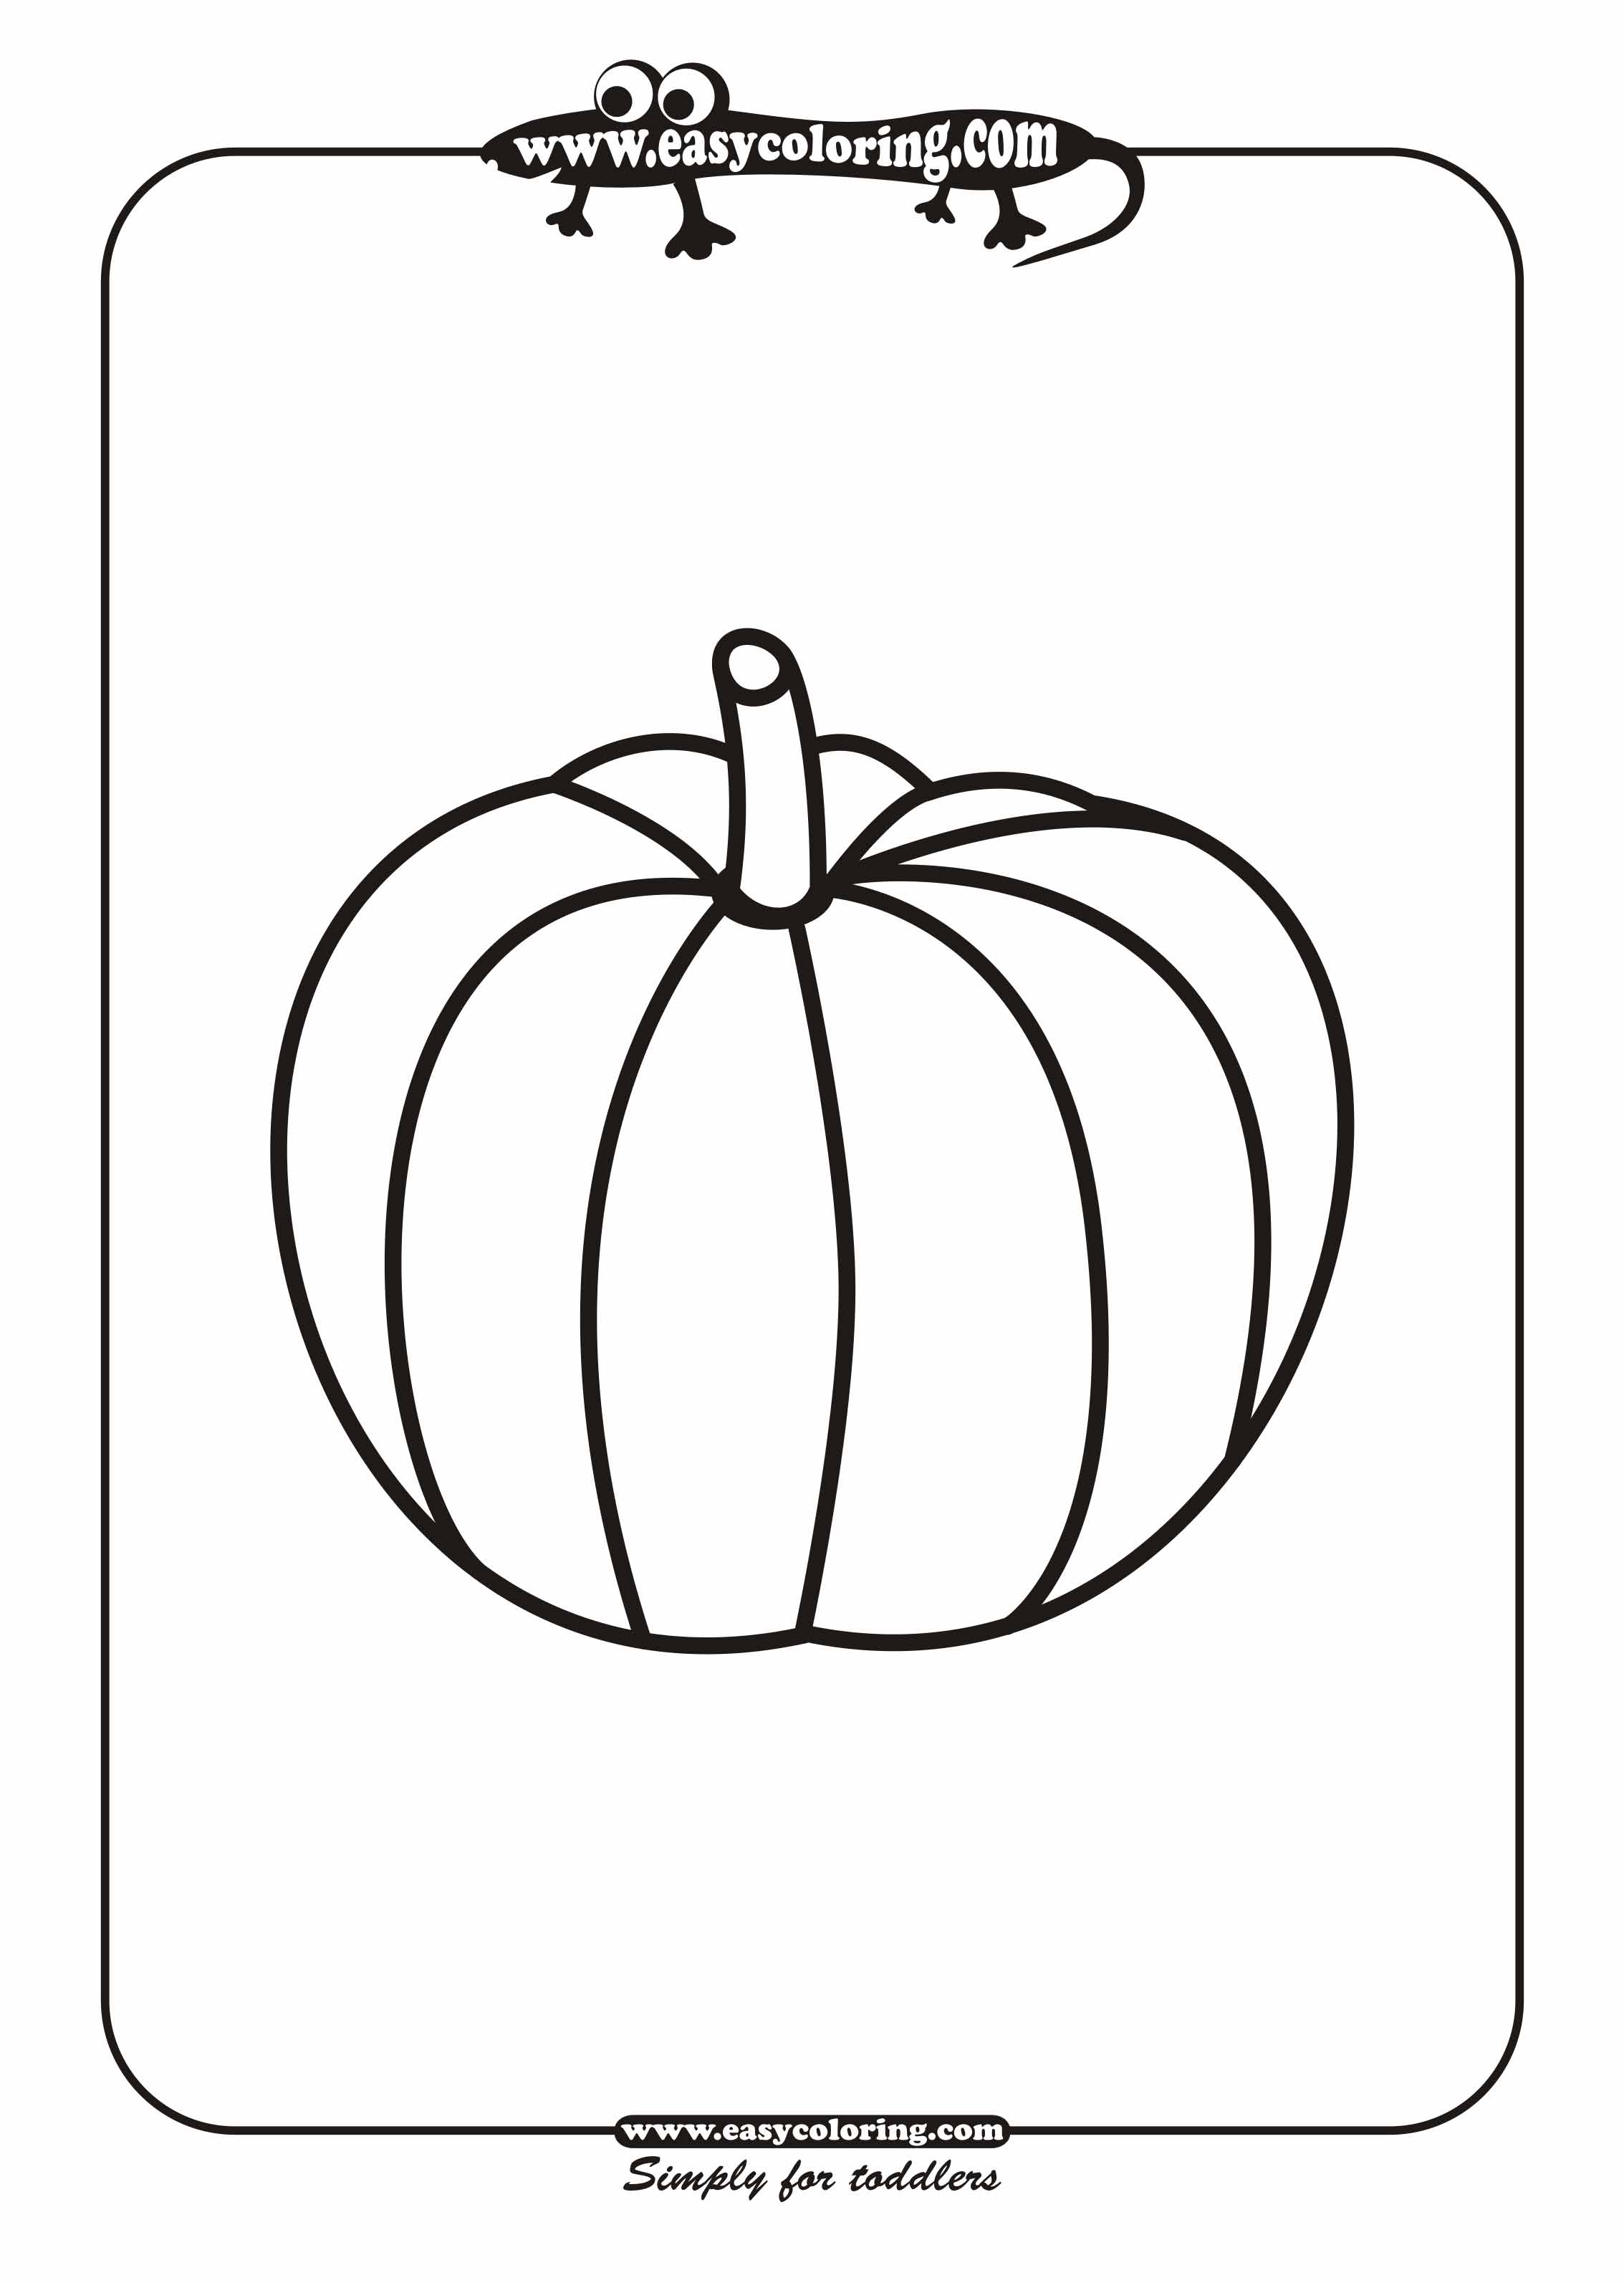 Easy coloring pages for toddlers - Pumpkin Easy Coloring Vegetables